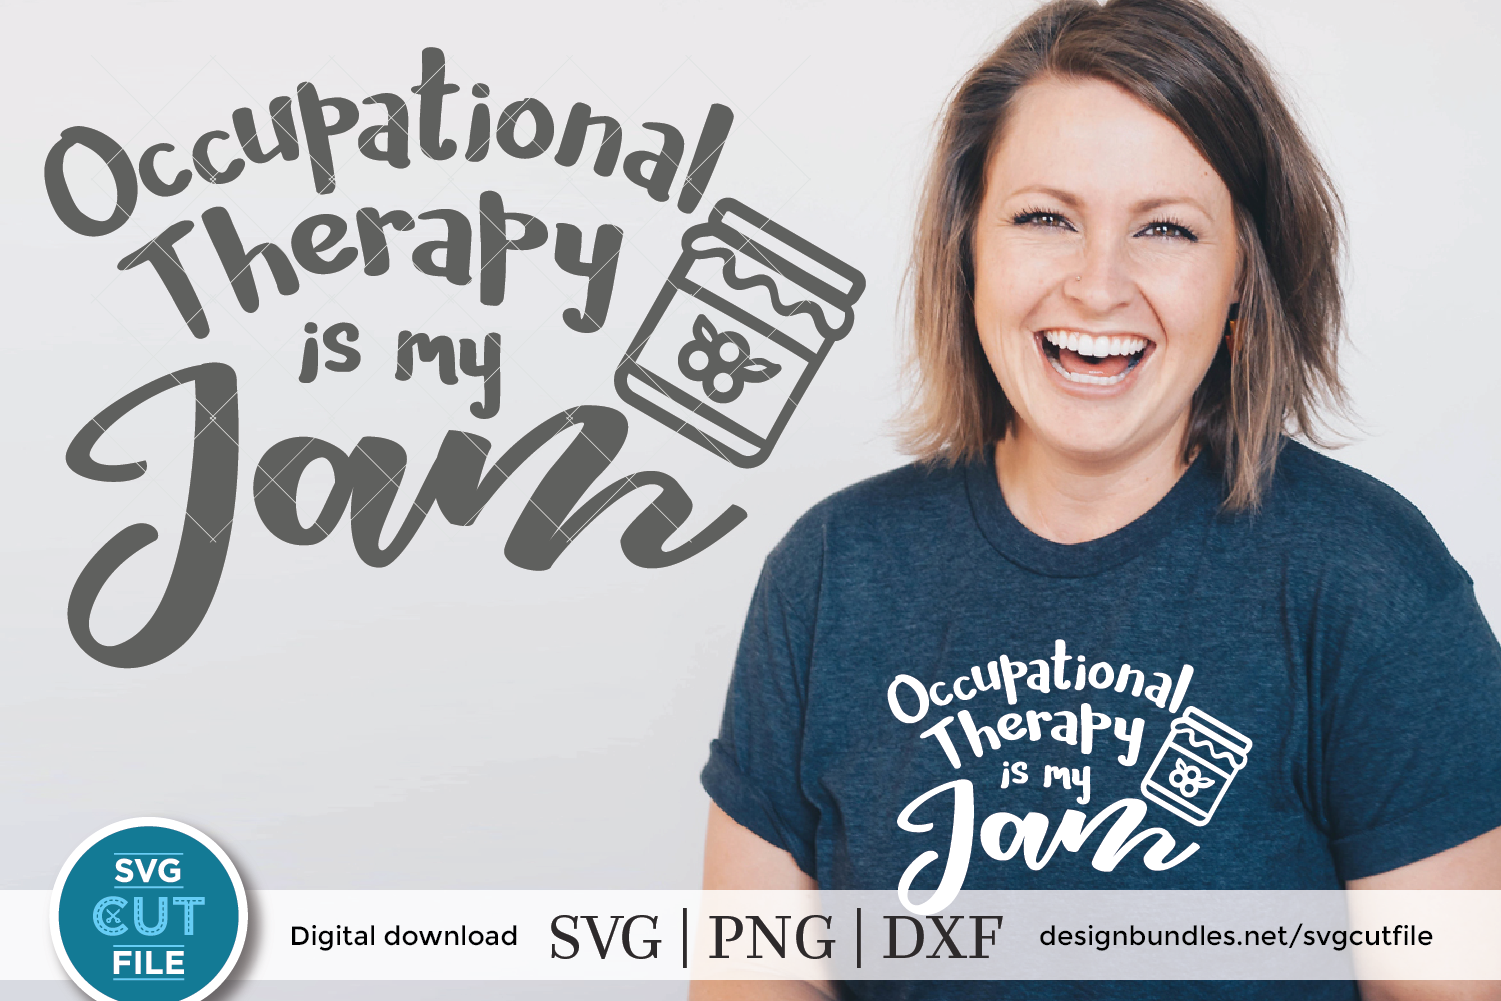 Occupational Therapy svg, Occupational Therapist svg, My Jam example image 1